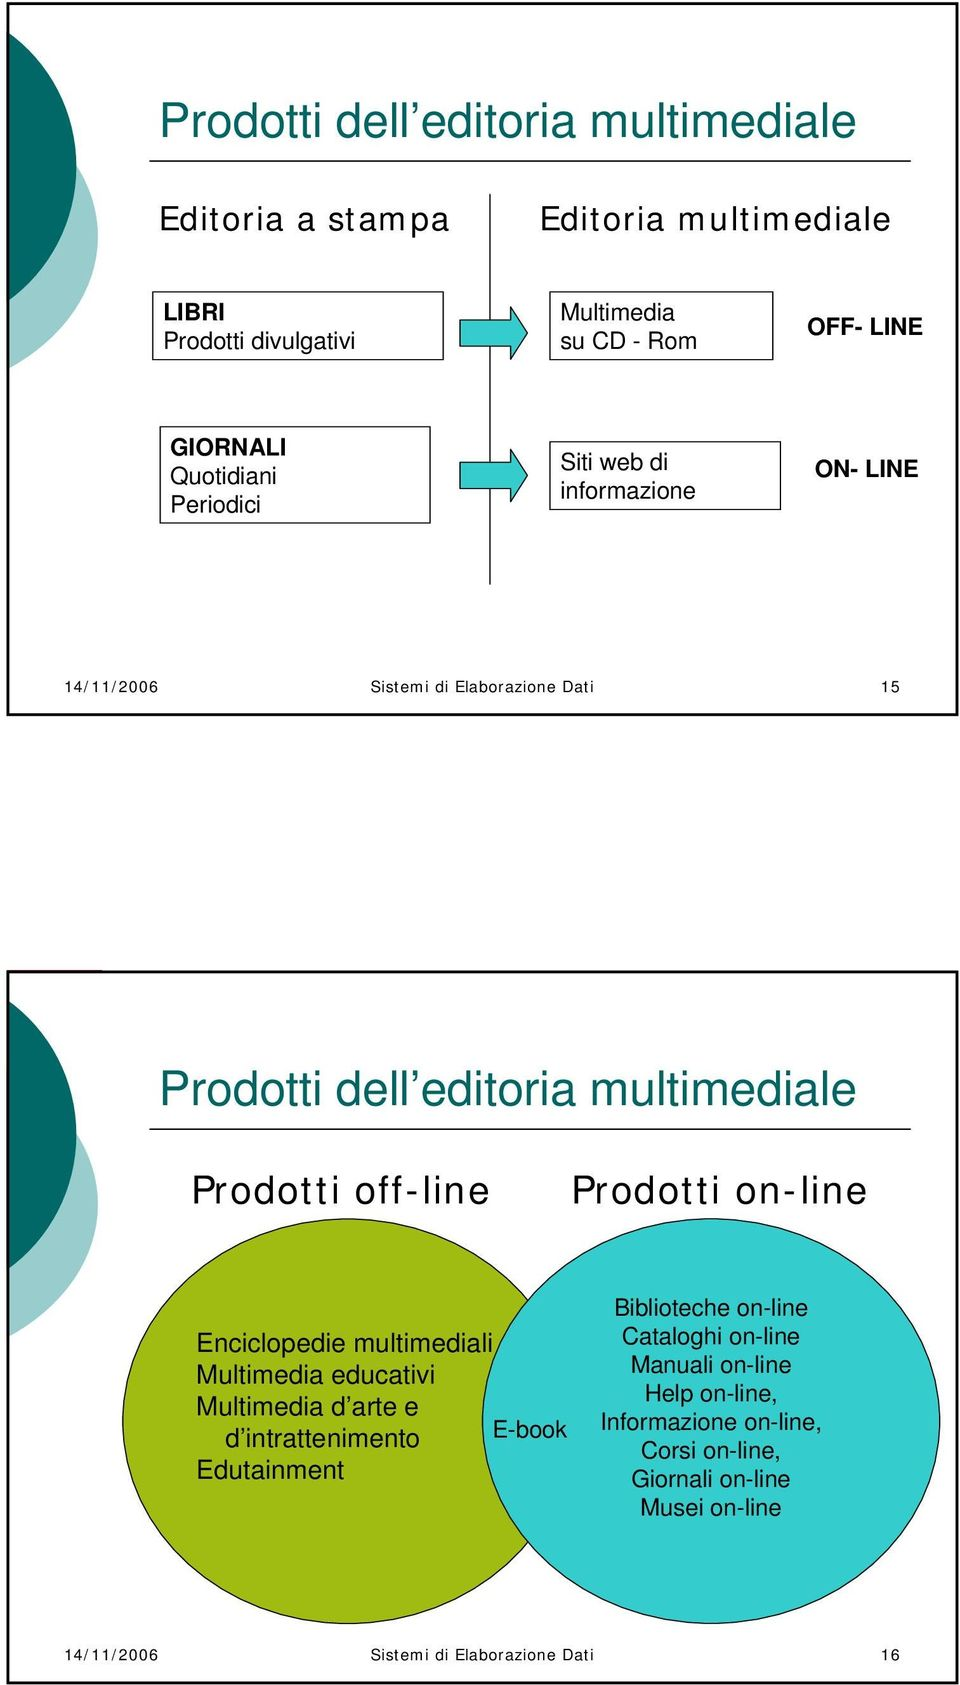 off-line Prodotti on-line Enciclopedie multimediali Multimedia educativi Multimedia d arte e d intrattenimento E-book Edutainment Biblioteche